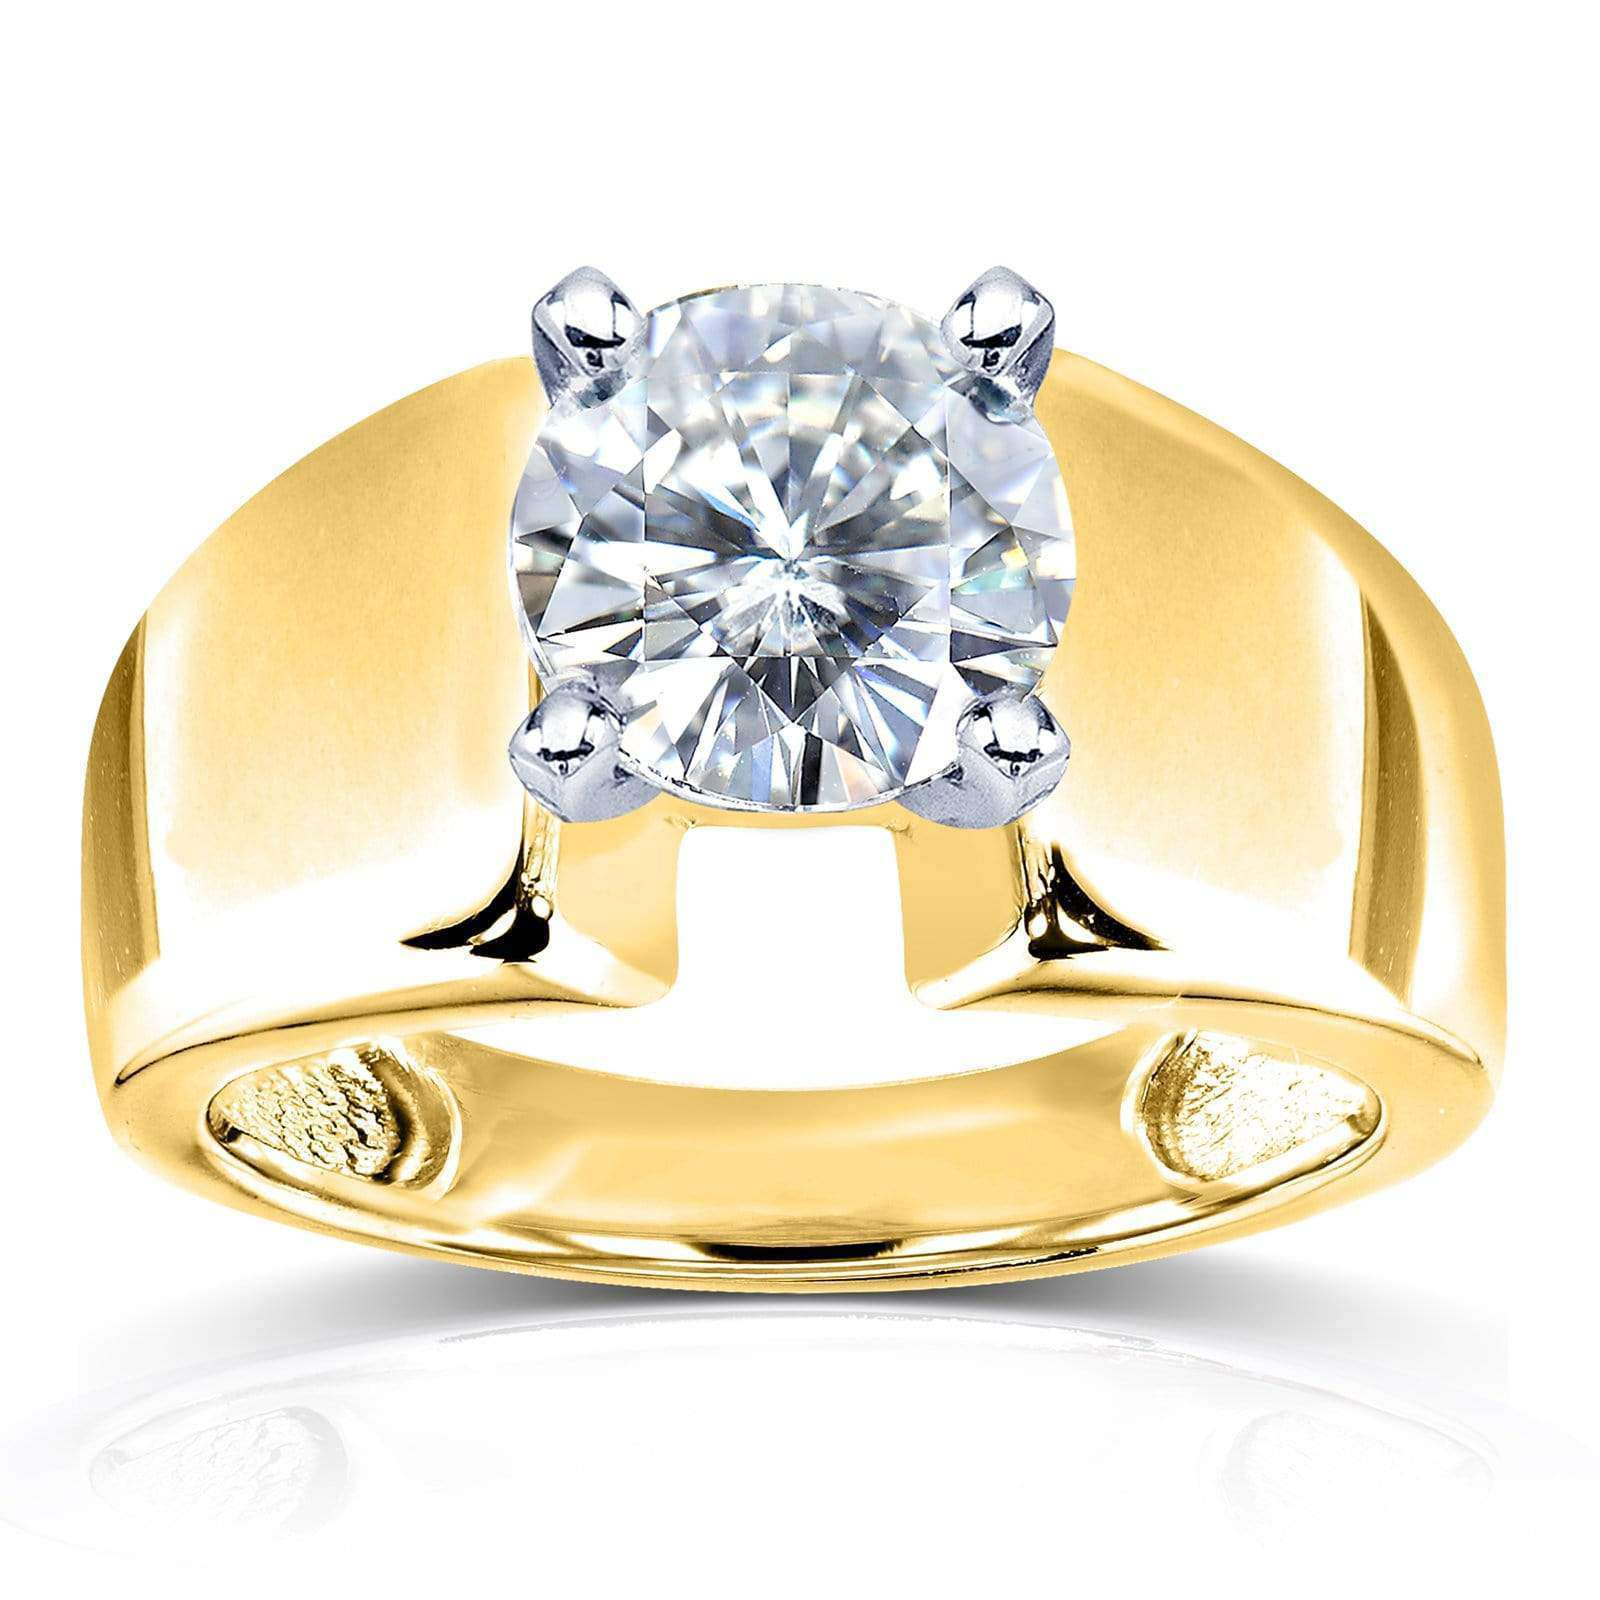 Reviews Wide Shank Round Brilliant Moissanite Solitaire Engagement Ring 1 9/10 Carat 14k Yellow Gold (FG/VS) - 9.5